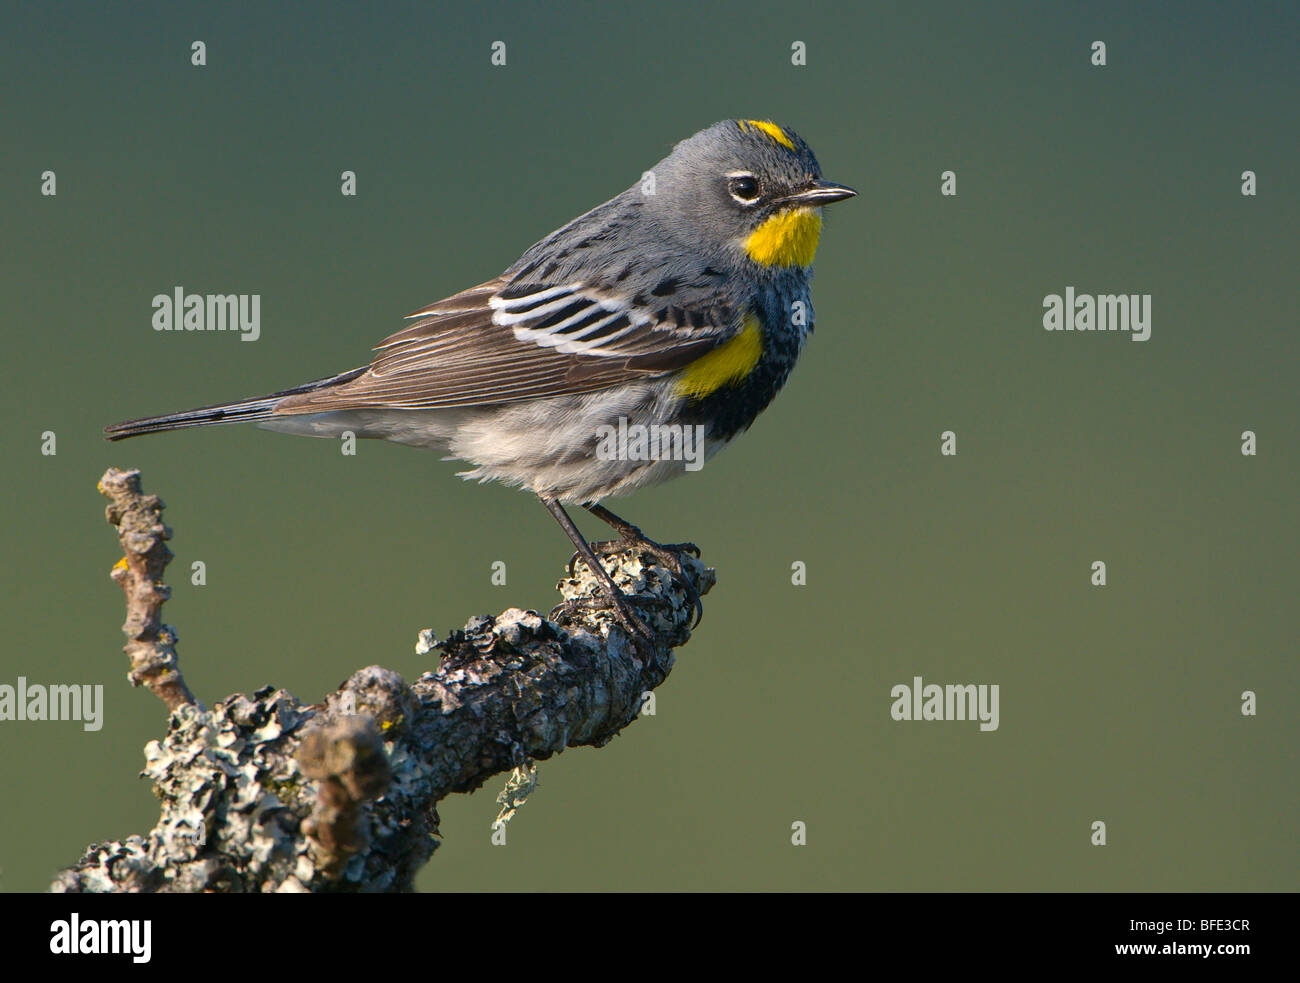 Male Yellow-rumped warbler (Dendroica coronata) on Garry oak perch at Observatory Hill, Saanich, British Columbia, - Stock Image